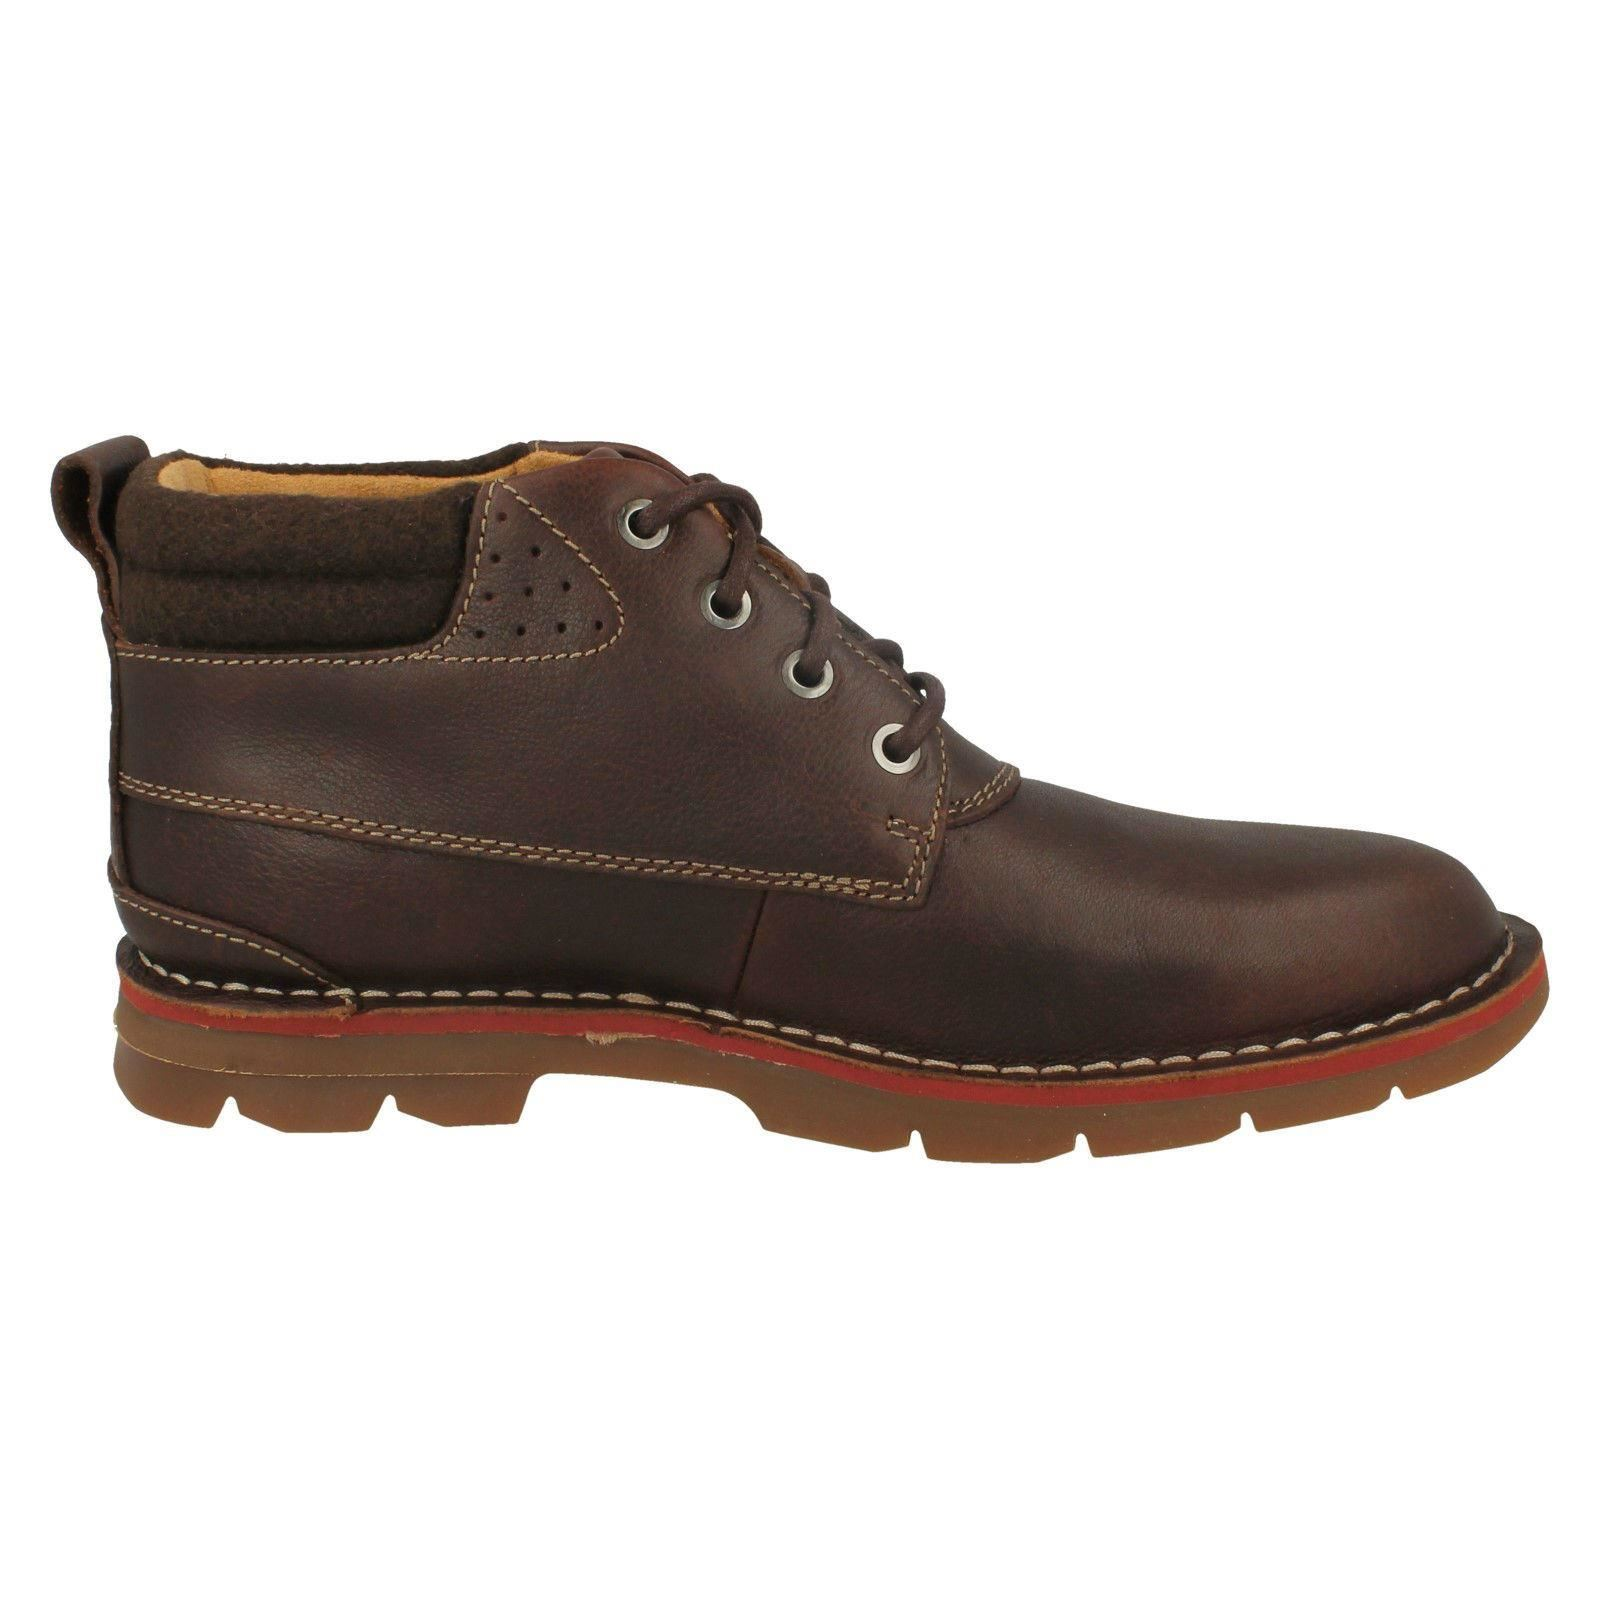 Mens-Clarks-Warm-Lined-Casual-Boots-039-Varick-Heal-039 thumbnail 9